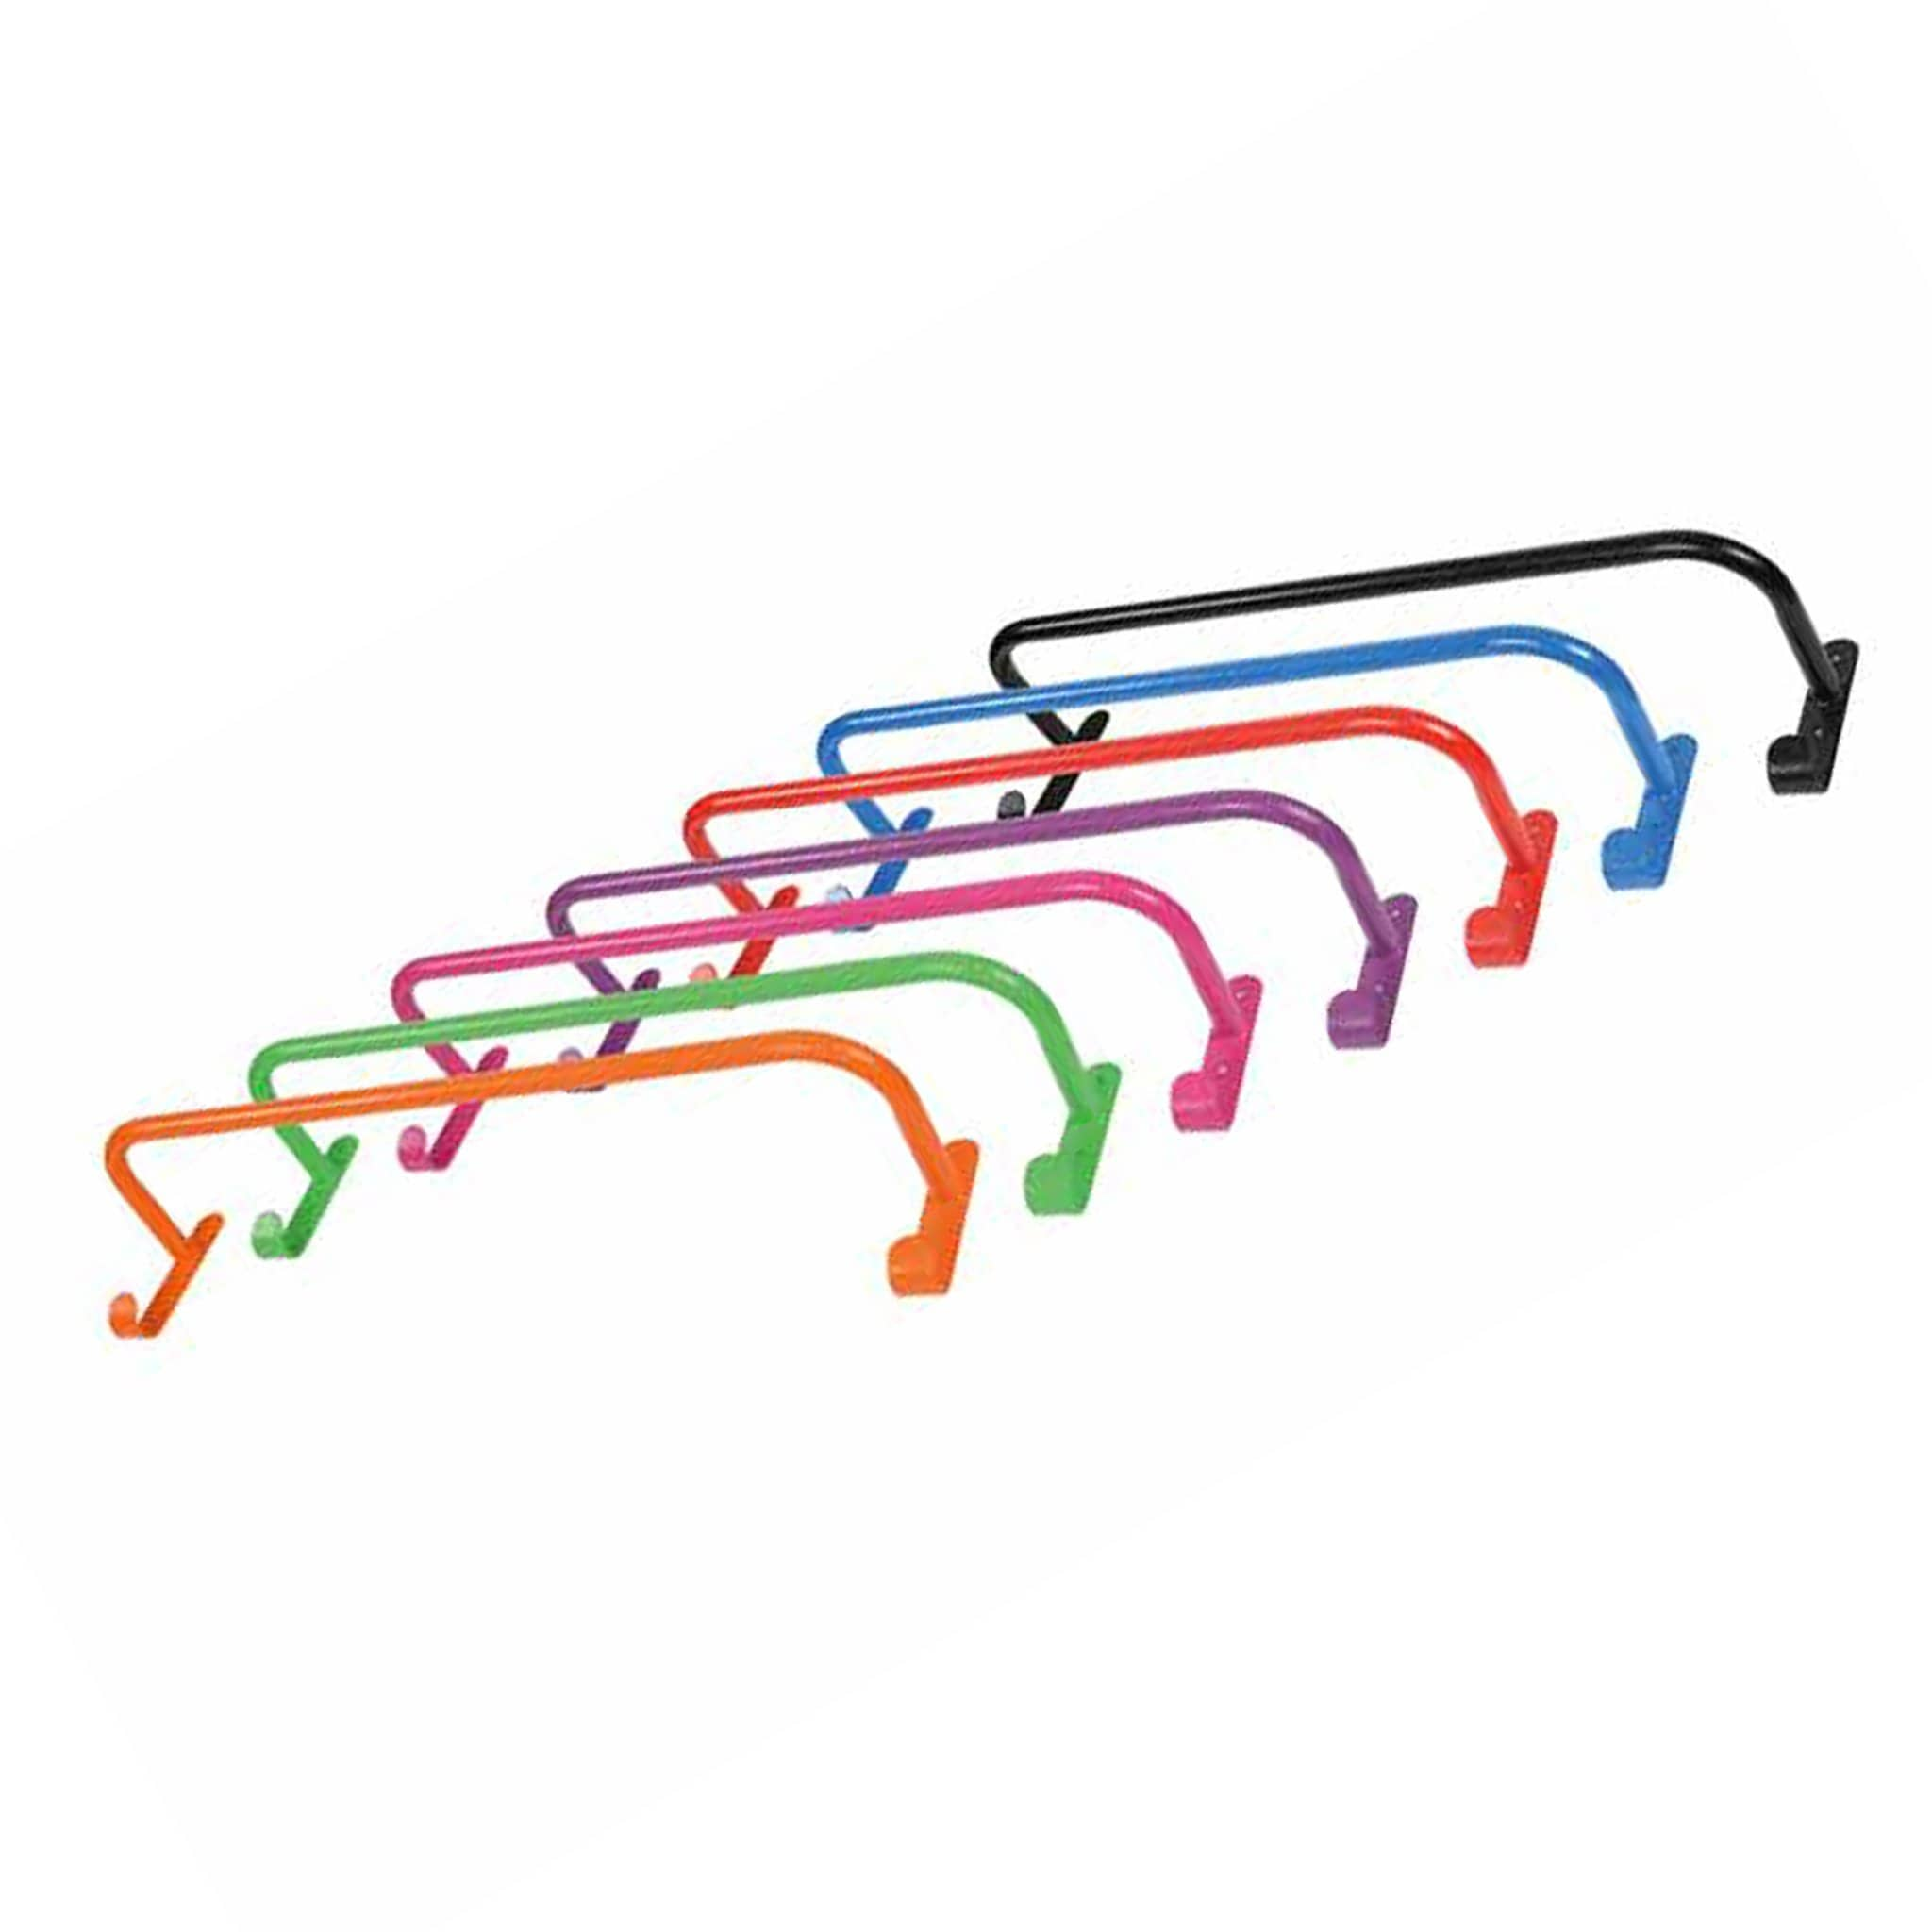 Shires EZI-KIT Rug Rack 979 in Black, Blue, Red, Purple, Pink, Green and Orange